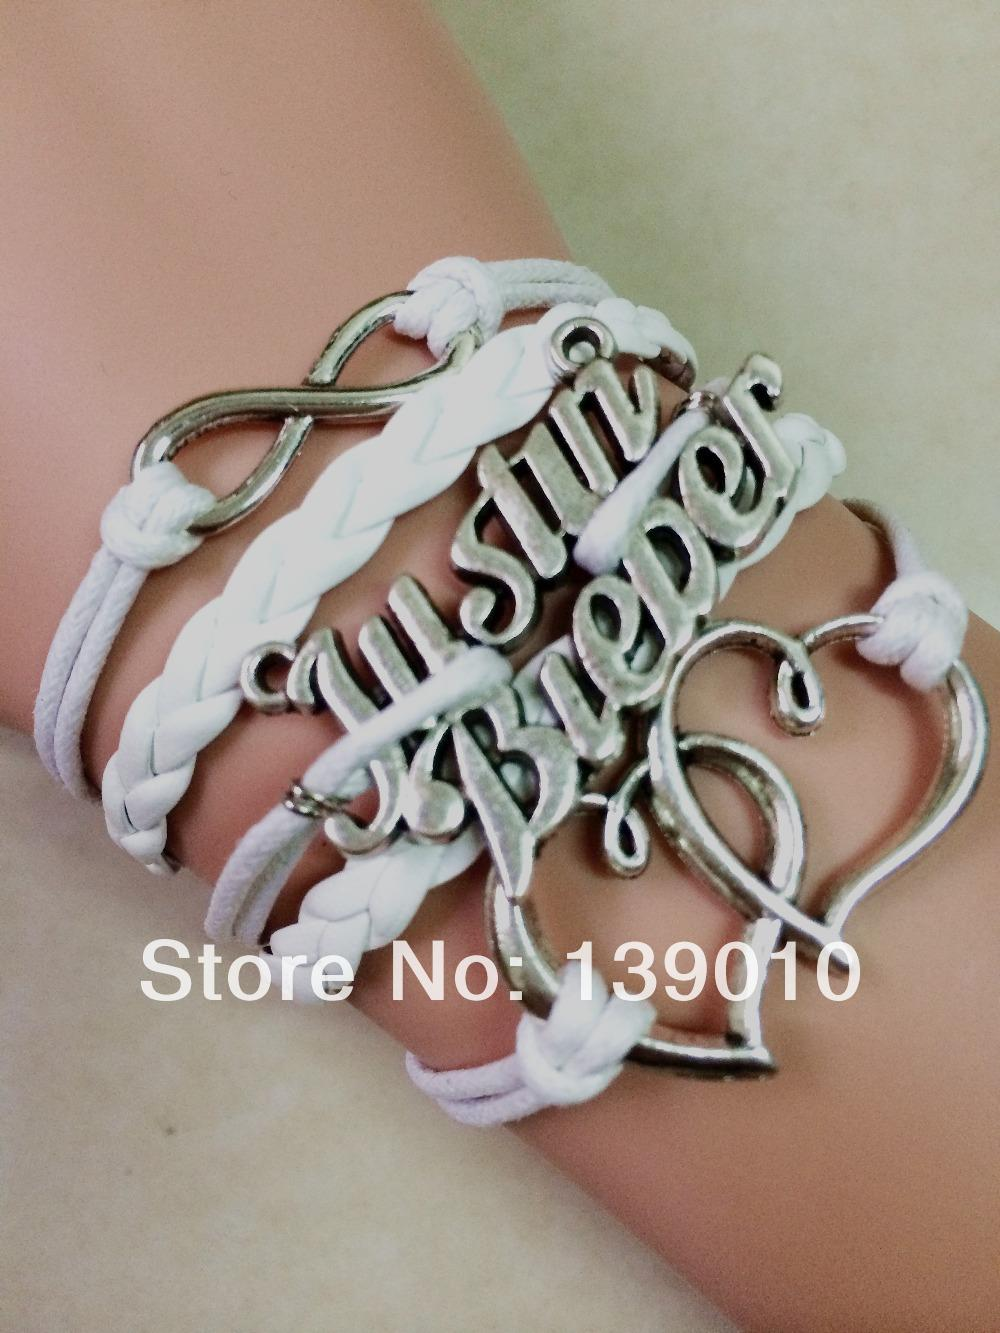 New Design Antique Silver Heart Justin Bieber Infinity Charm Bracelets Bangles 2016 Multicolor Leather Rope Cuff Lovers Jewelry